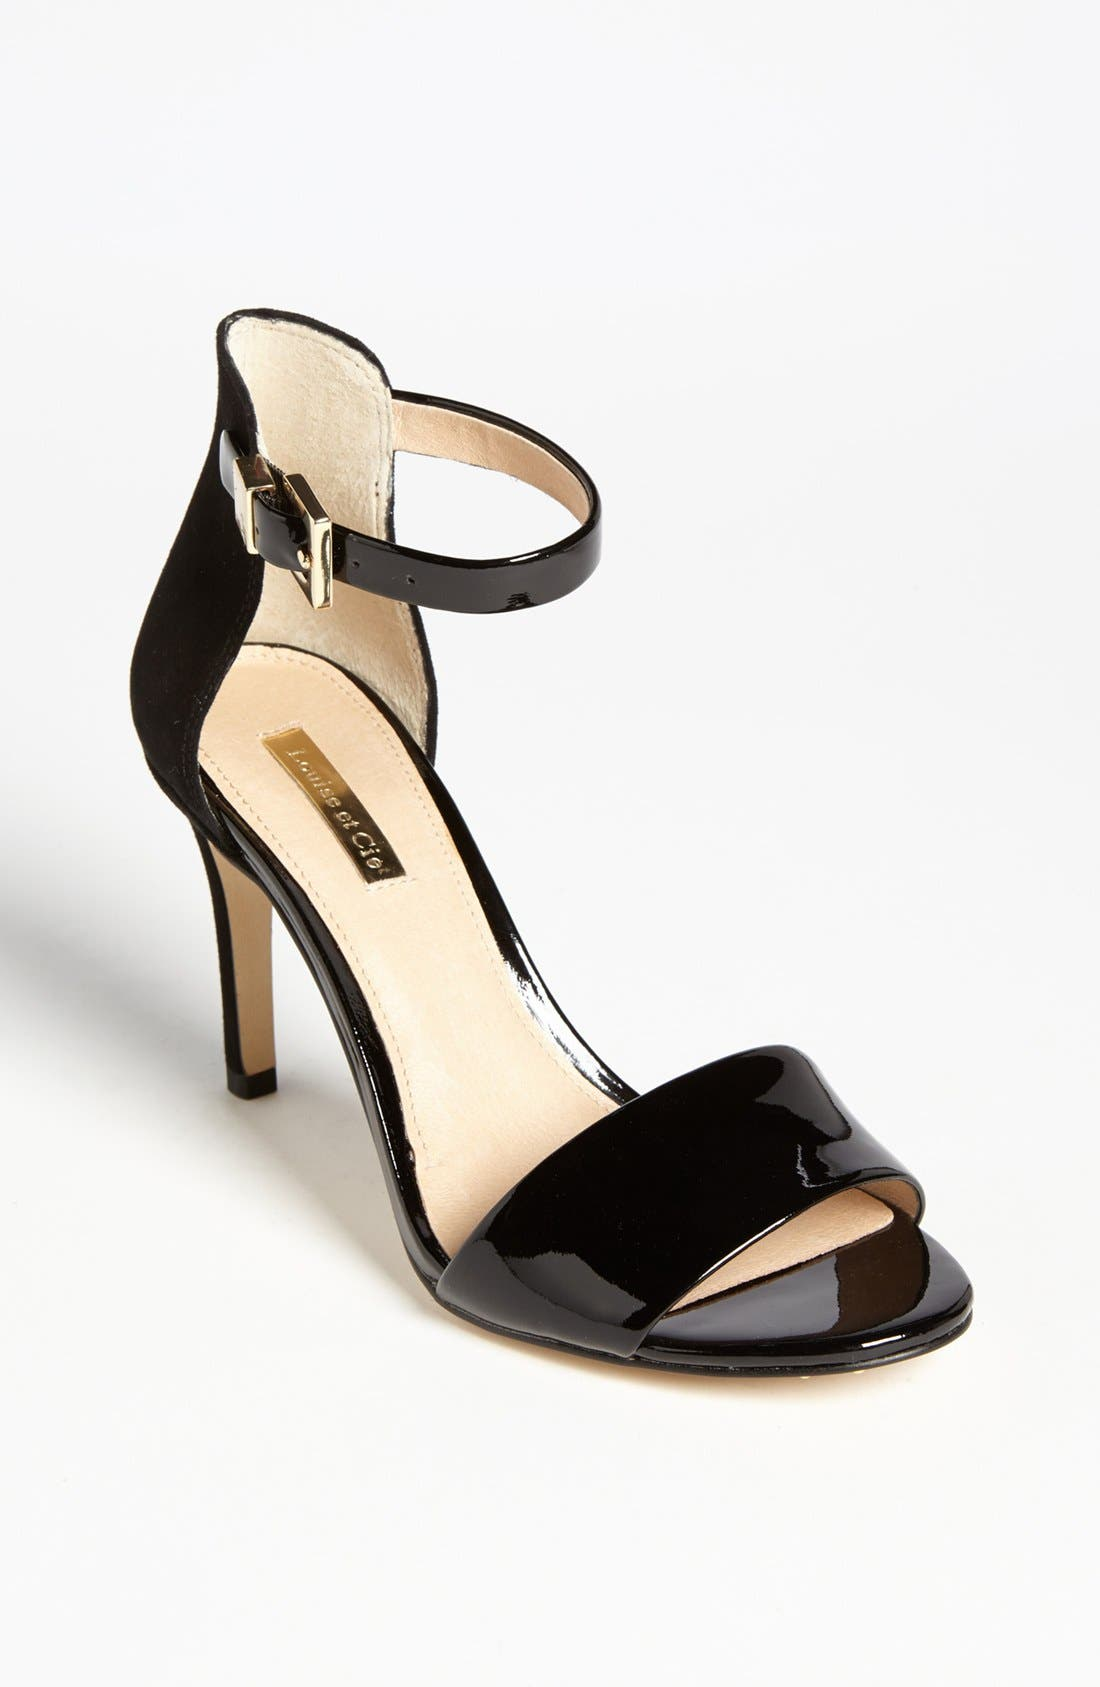 Alternate Image 1 Selected - Louise et Cie 'Olive' Sandal